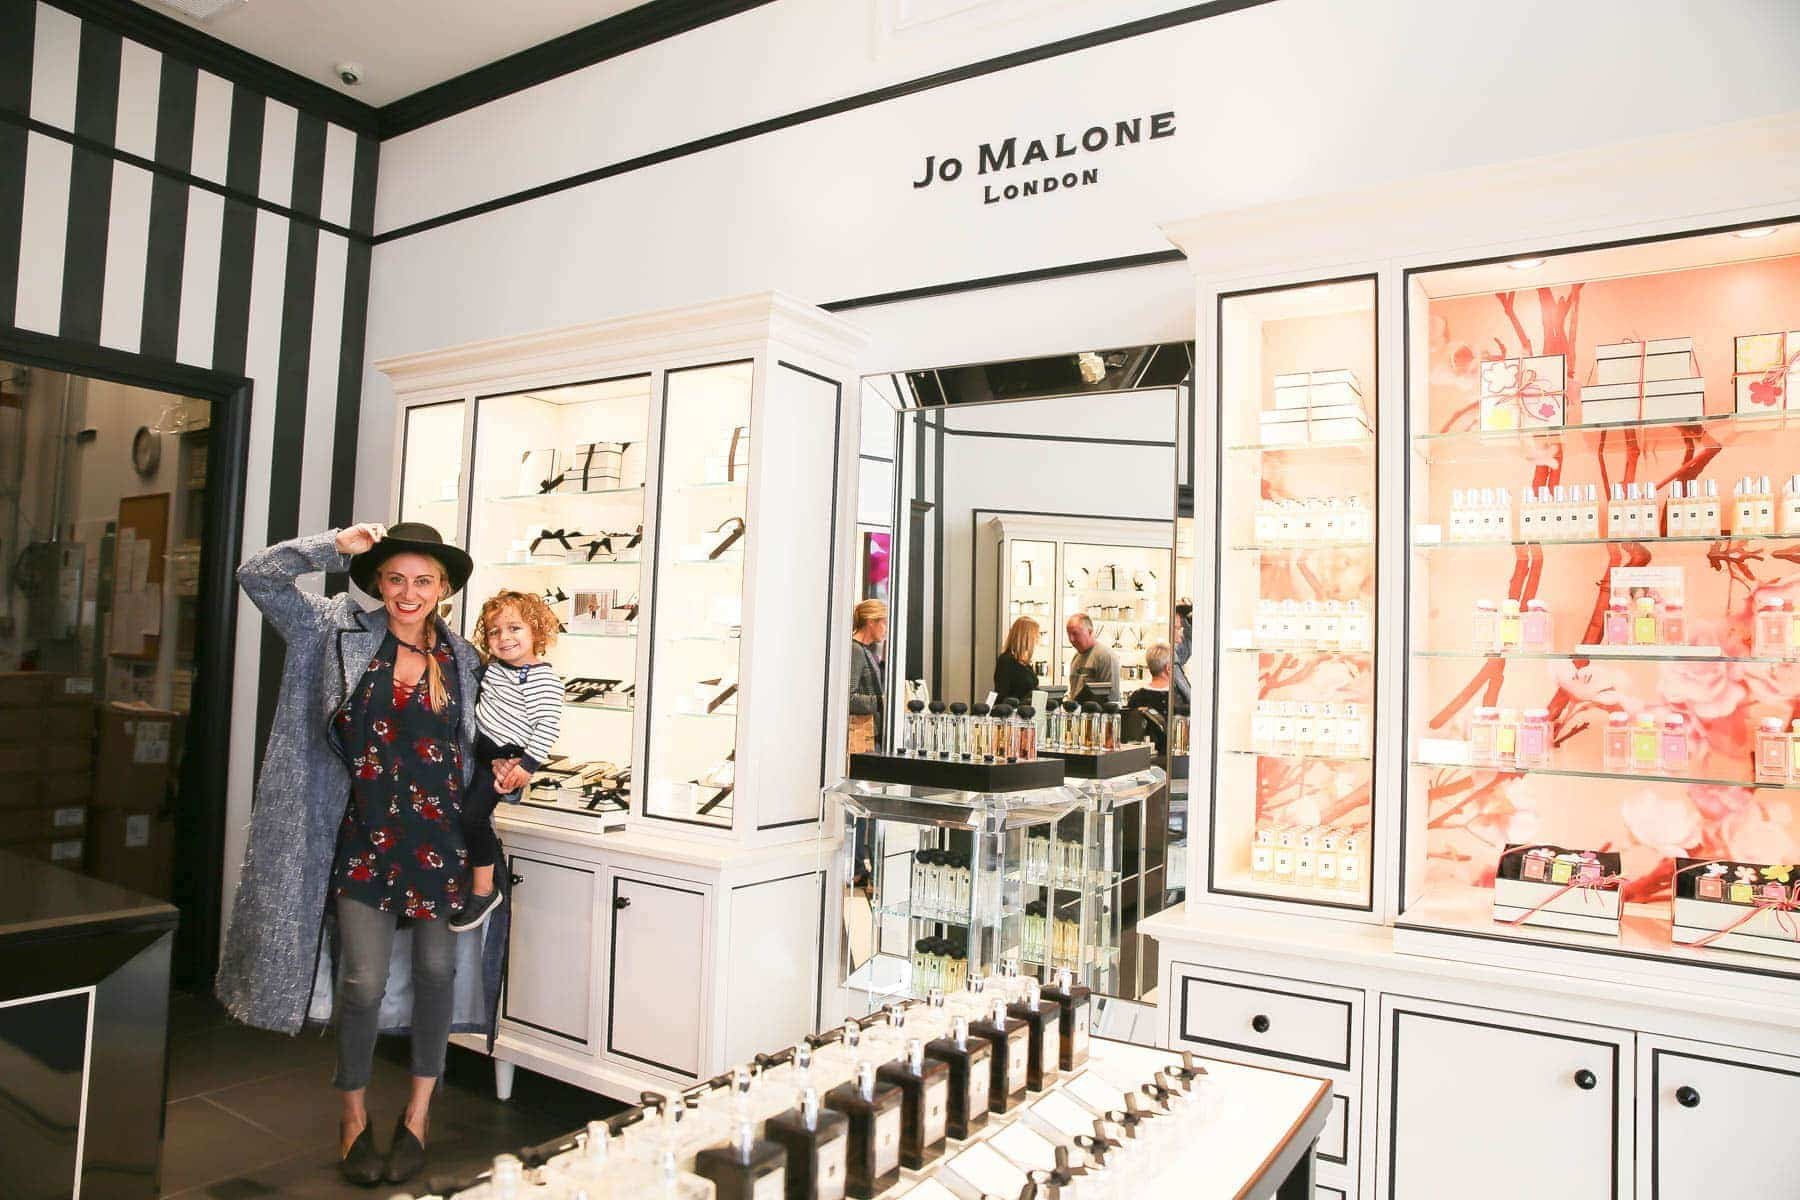 Styling With Scents At Westfield UTC - Jo Malone London Scent Collection #citygirlgonemom #jomalone #stylingwithscents